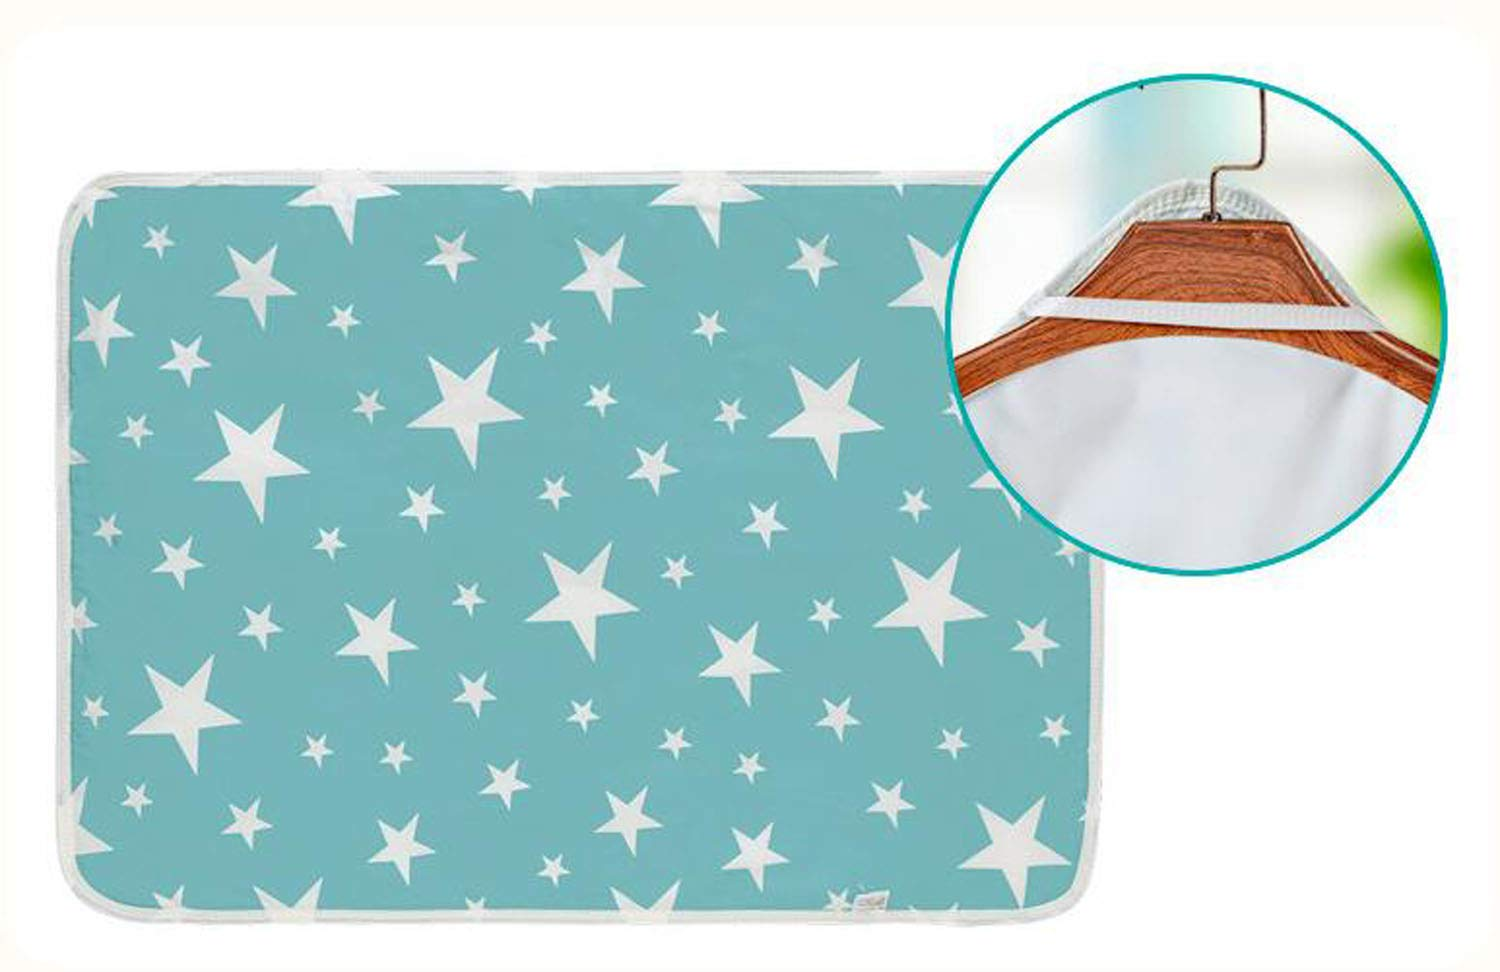 2 Packs Diaper Changing Pad Waterproof Bed Pad 50/'/'x 70/'/' Thicker Soft Cotton Breath Baby Diaper Liners Cotton Urine Pads Absorbent Blanket Sheet Bed Pads